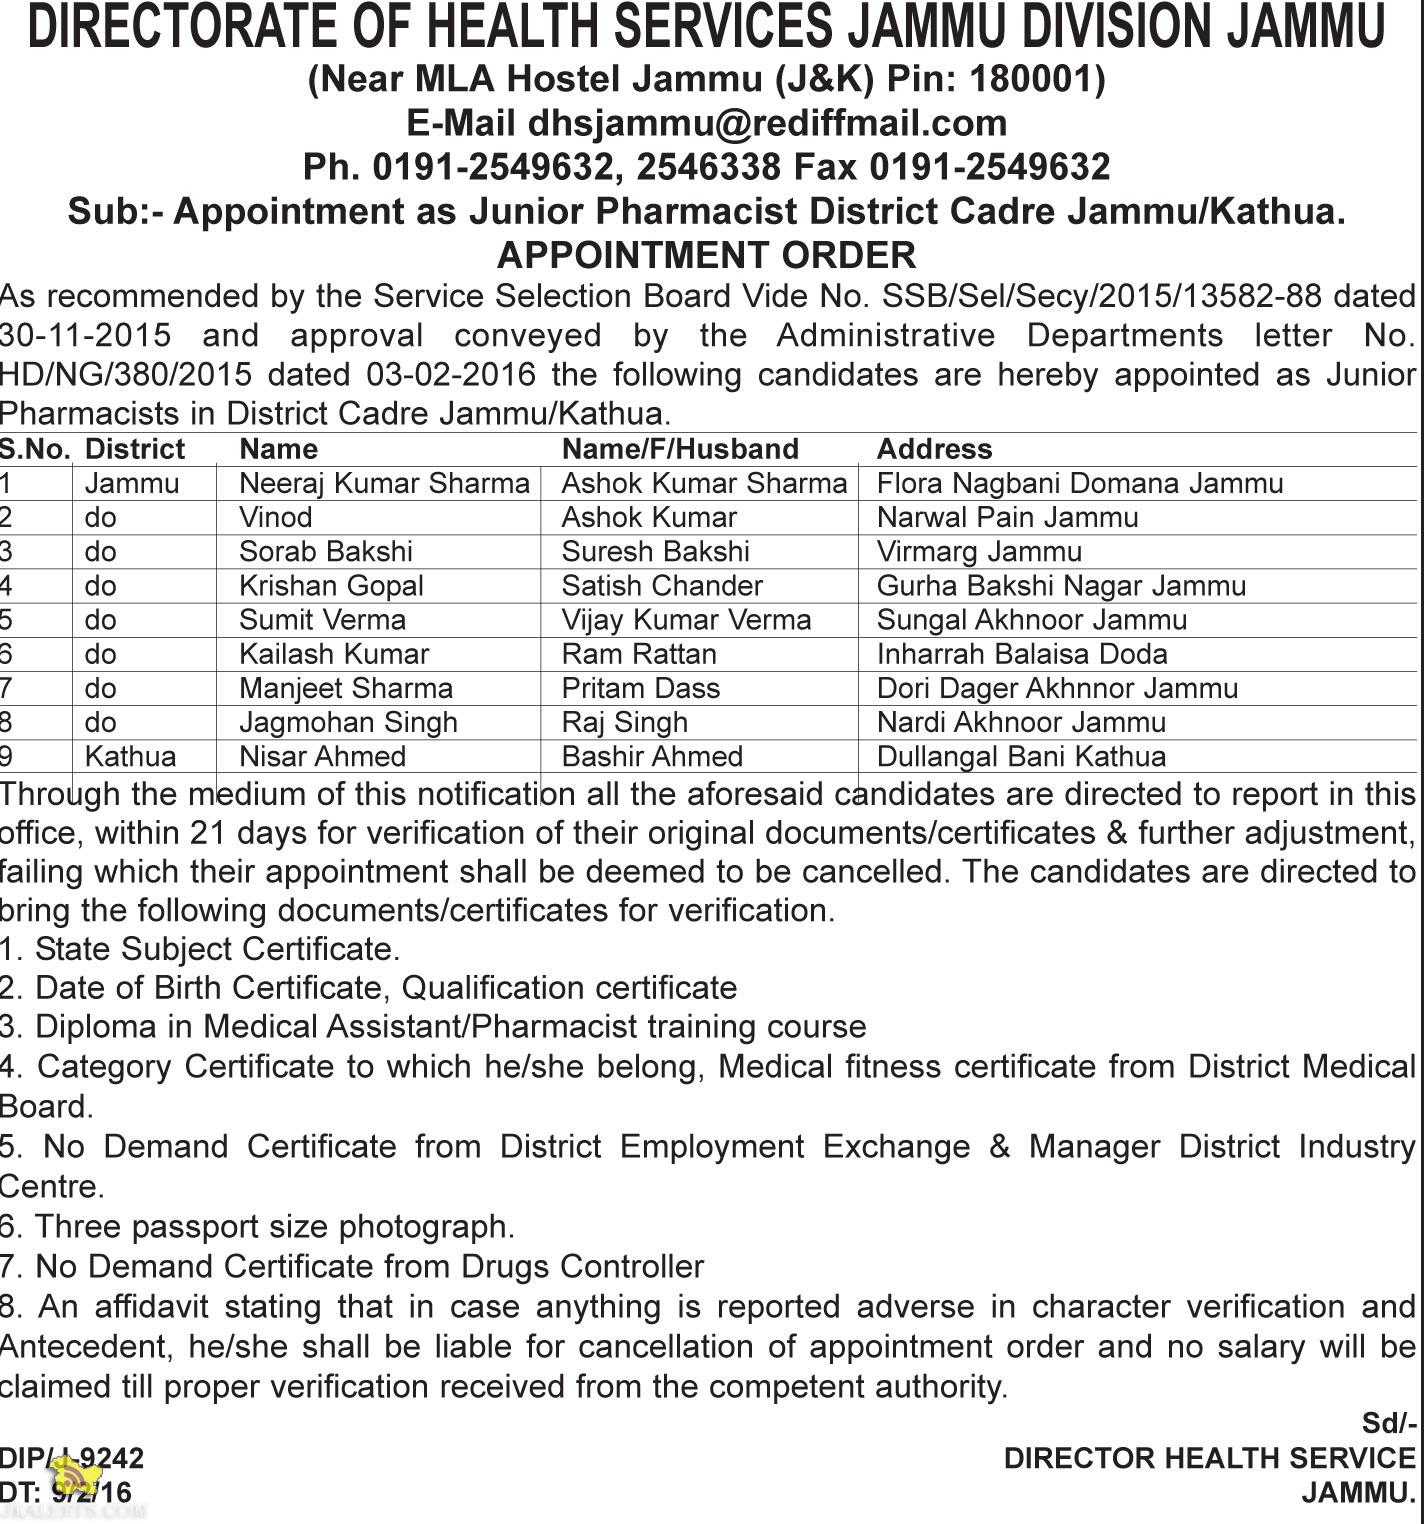 Selection list of Junior Pharmacist District Cadre Jammu/Kathua